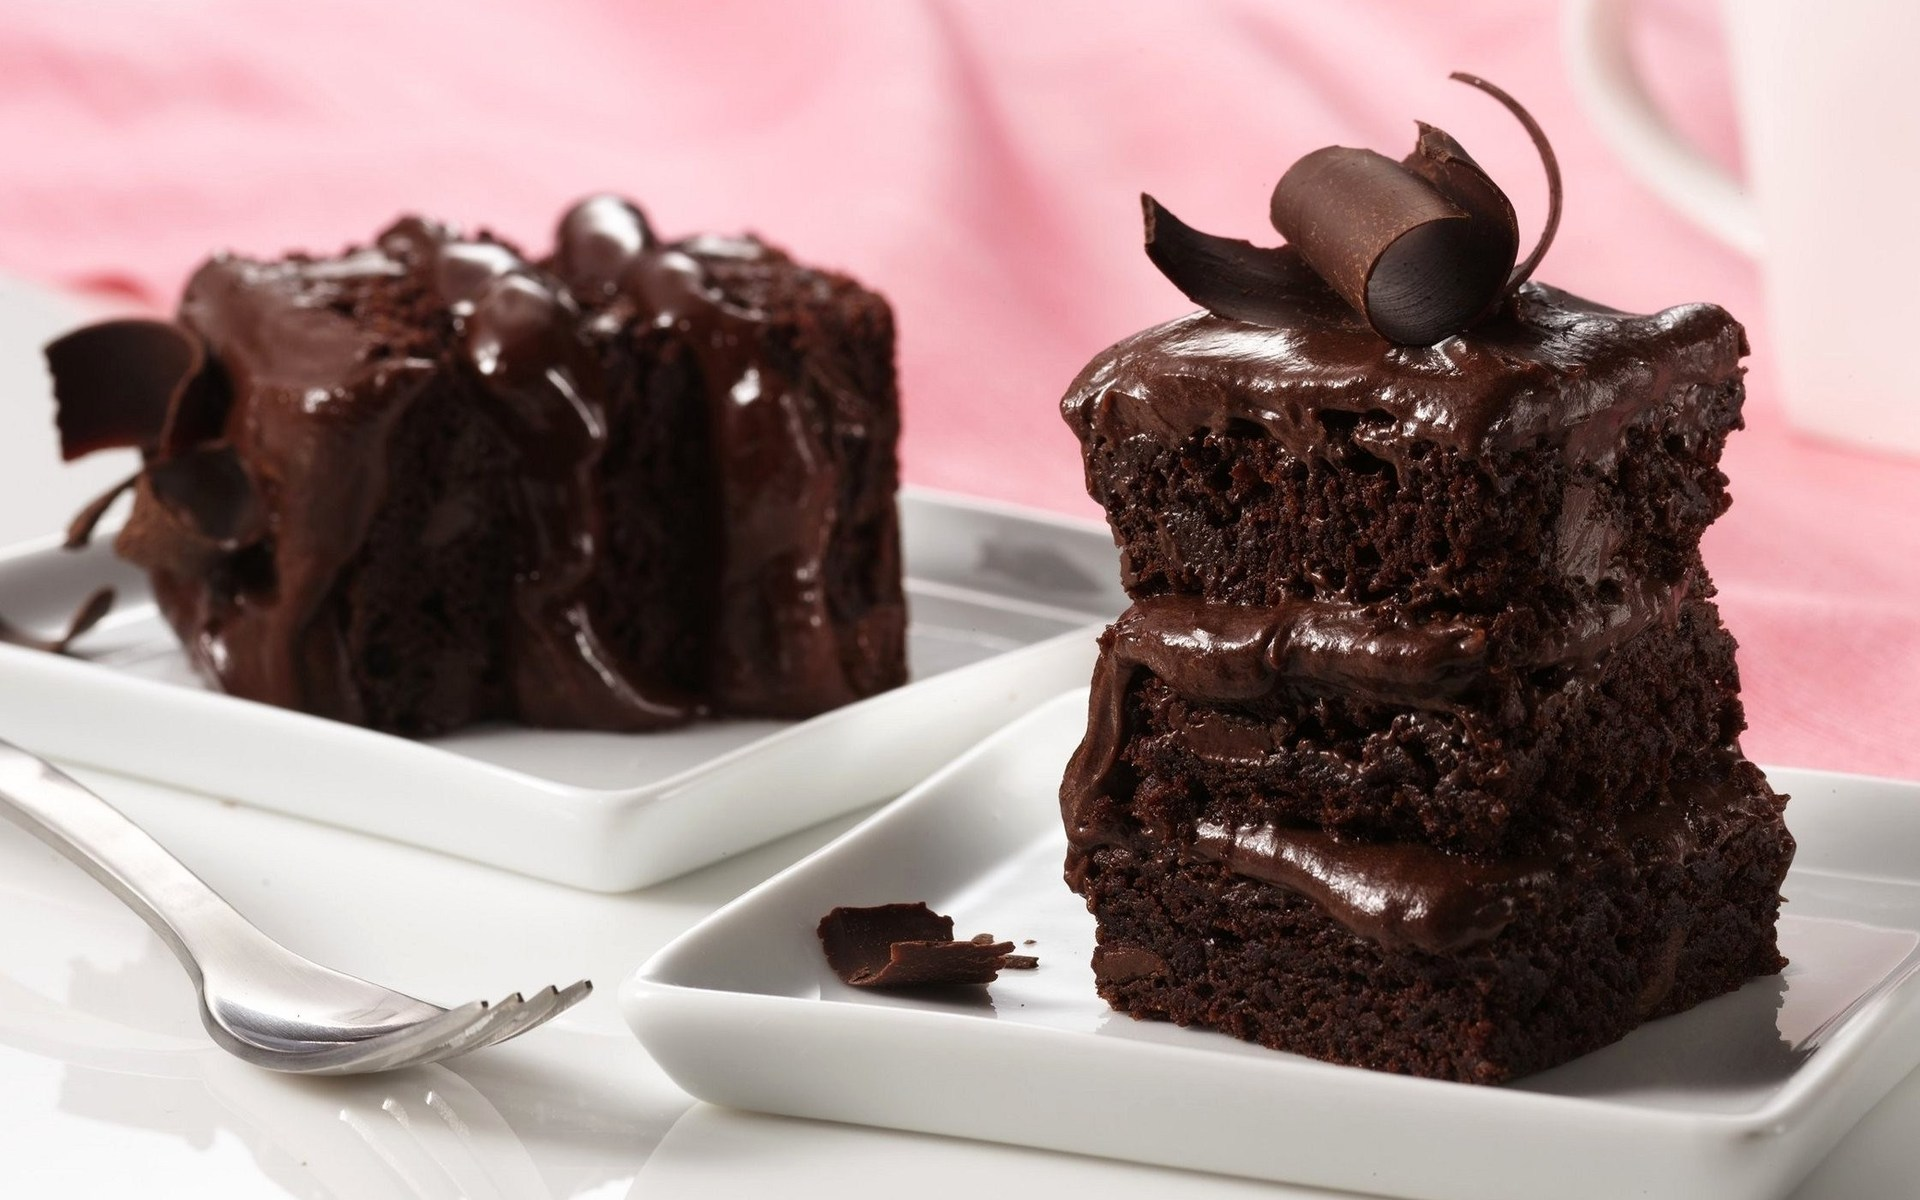 Delicious Chocolate Cake Served wallpaper 1920x1200